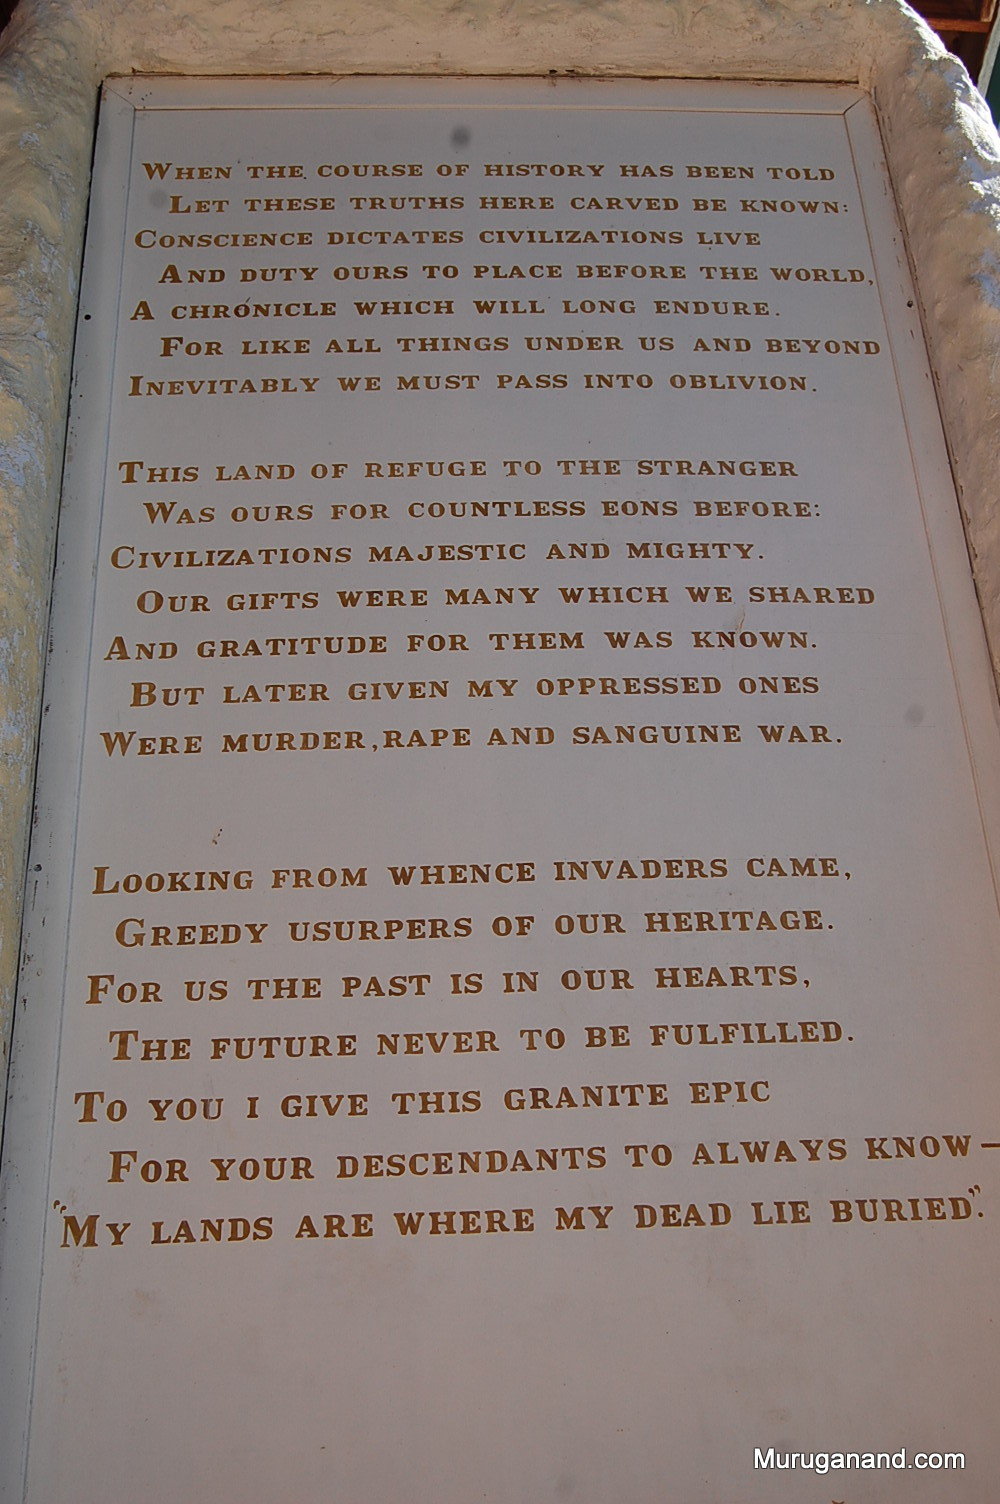 Poem written by Korczak Ziolkowski. Last line is a quote from Crazy Horse.